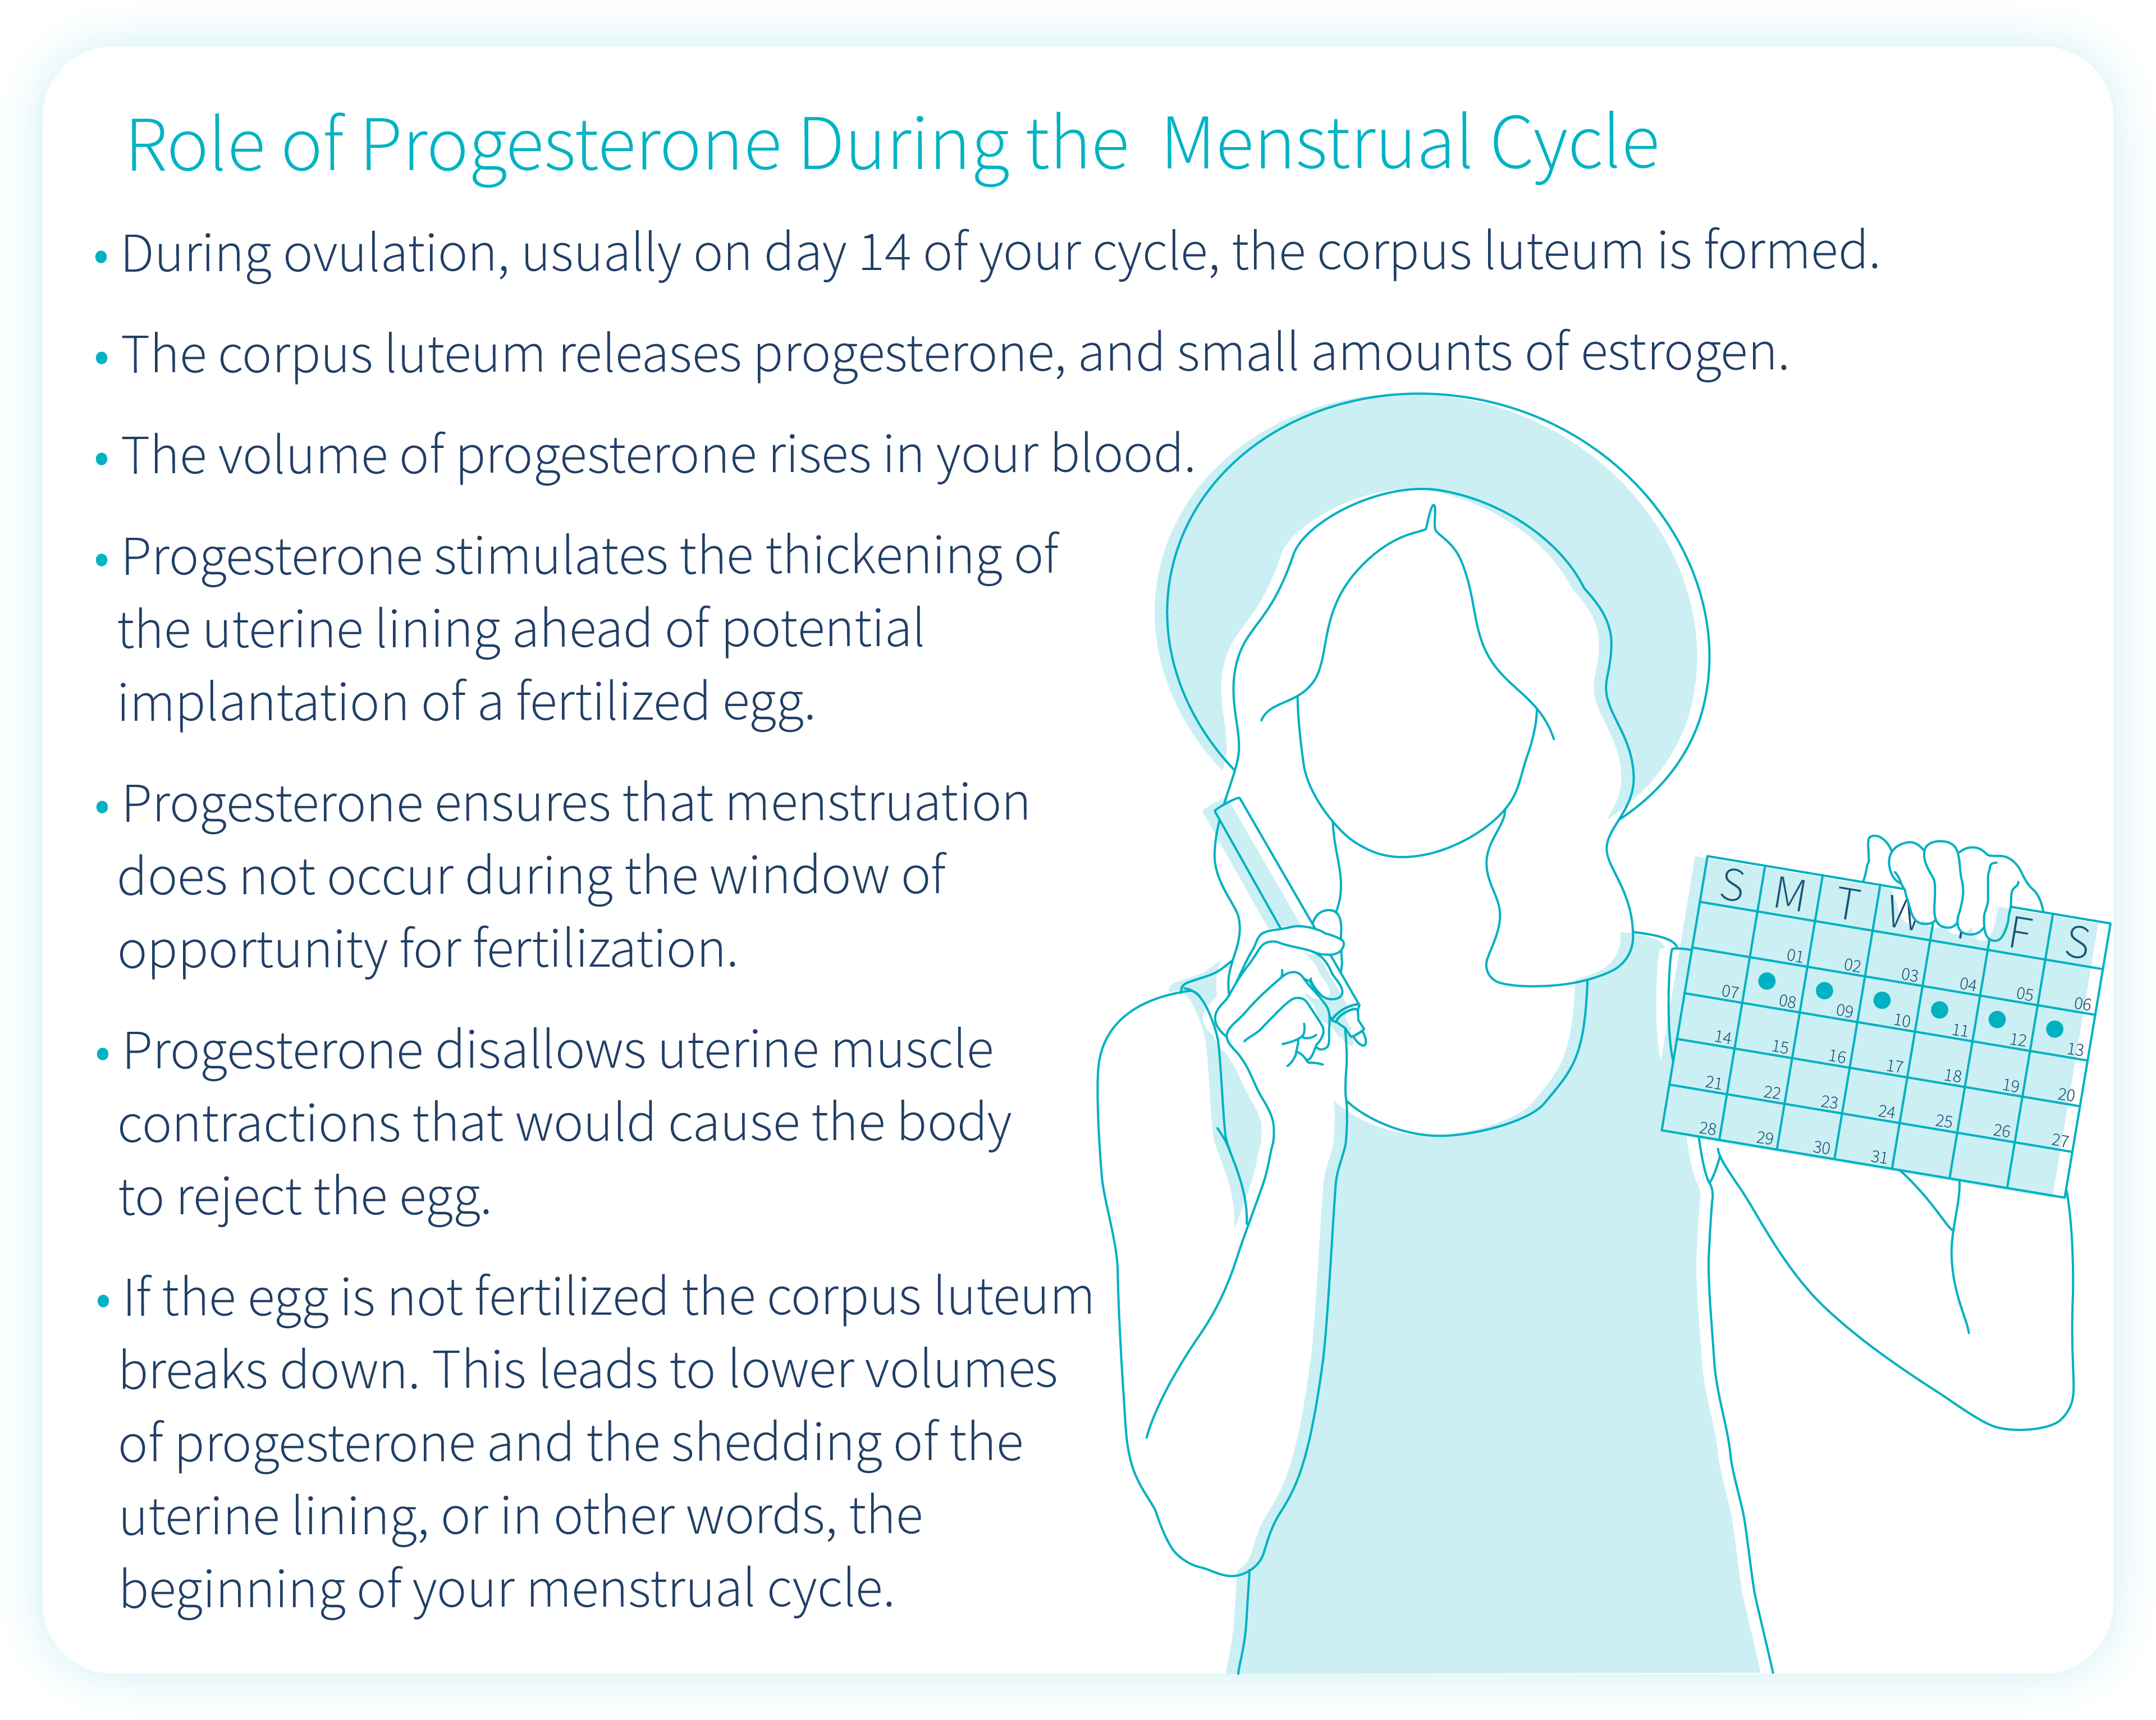 role-of-progesterone-during-the-menstrual-cycle